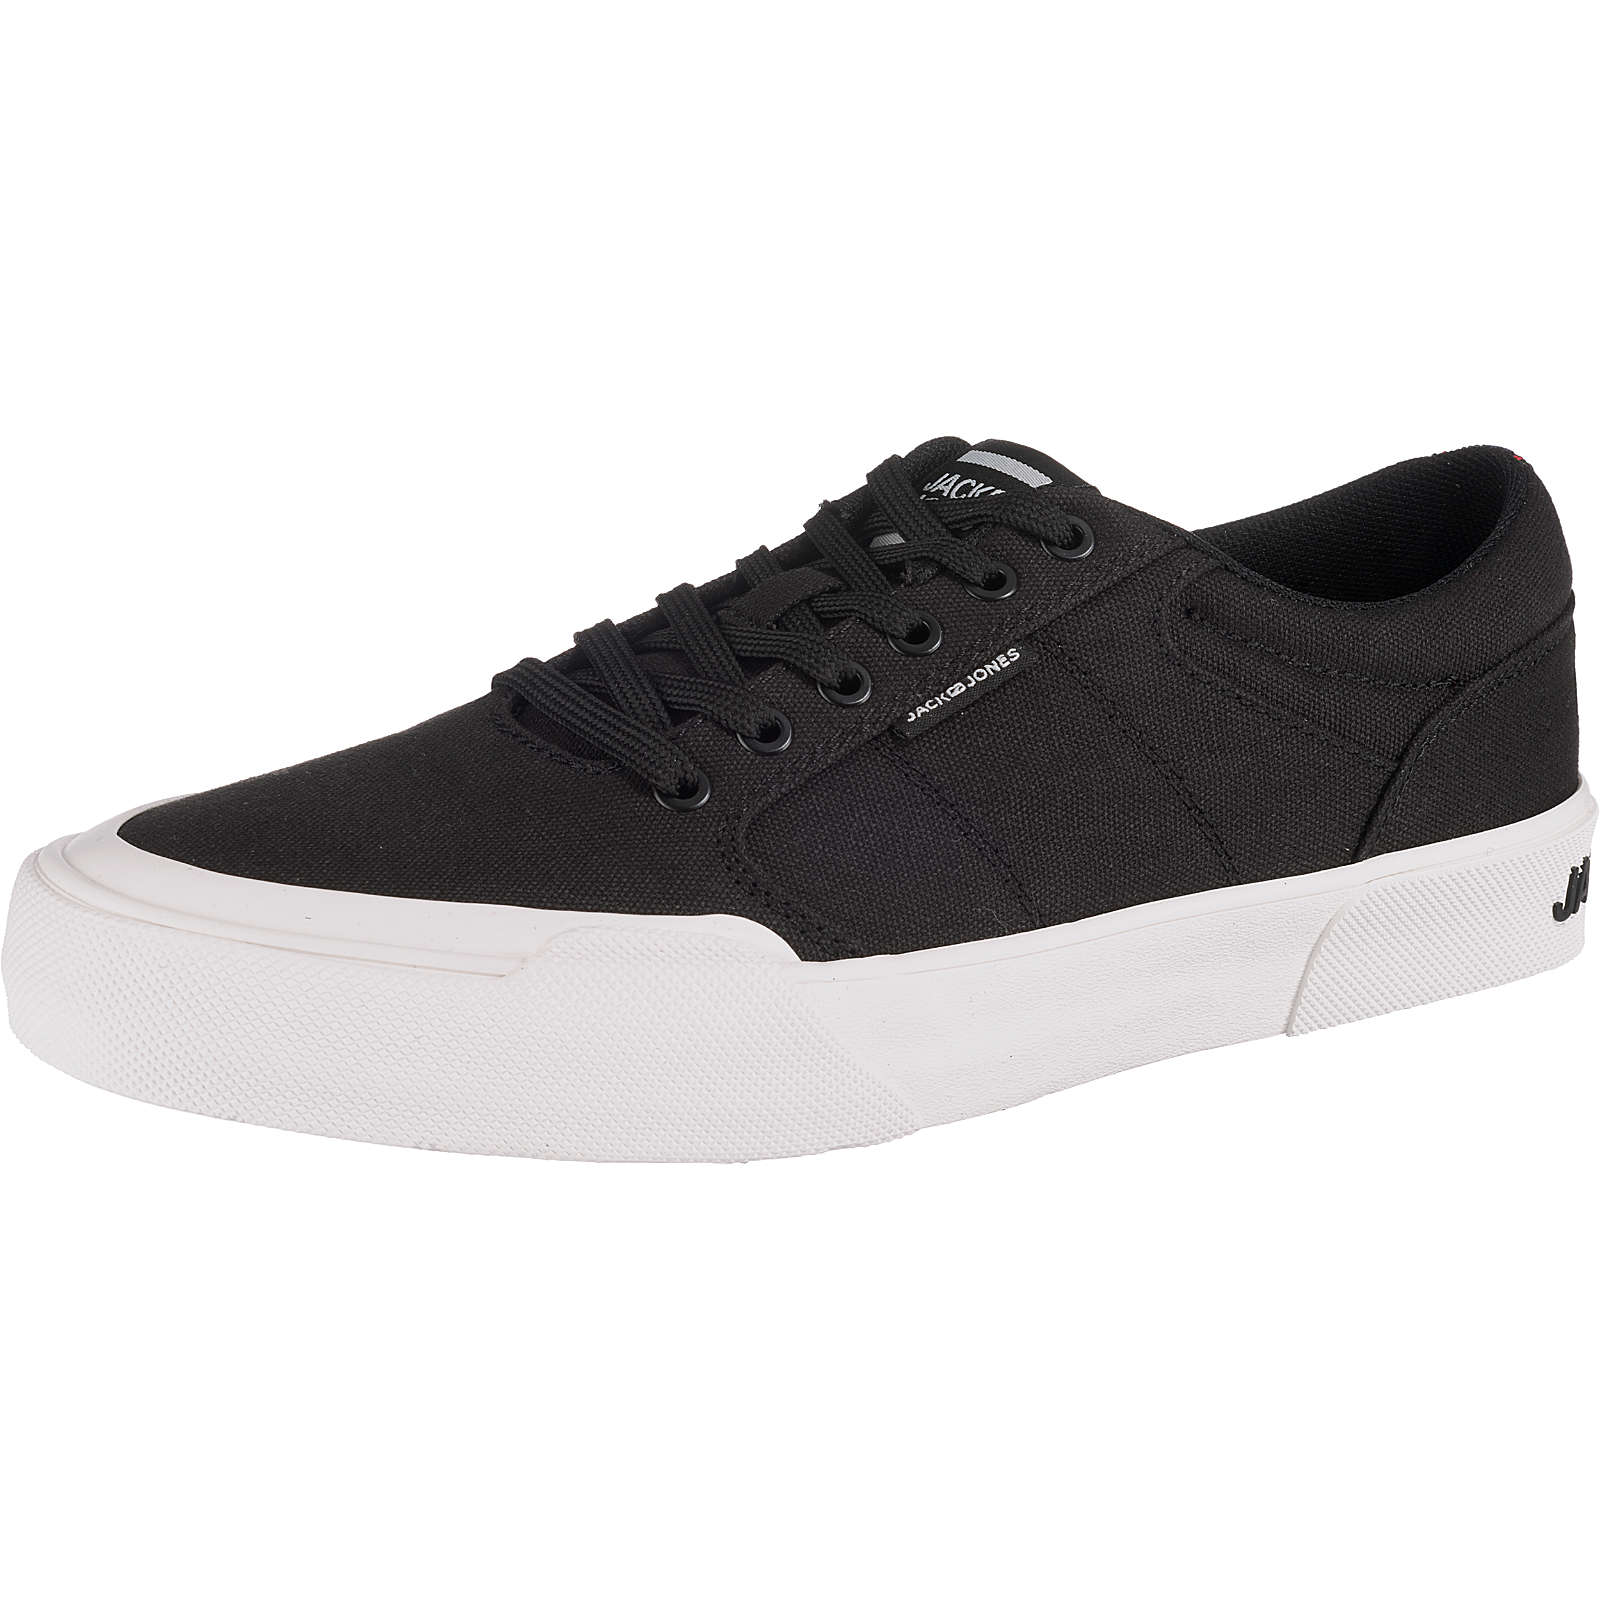 JACK & JONES JFWTHAI CANVAS ANTHRACITE Sneakers Low anthrazit Herren Gr. 41